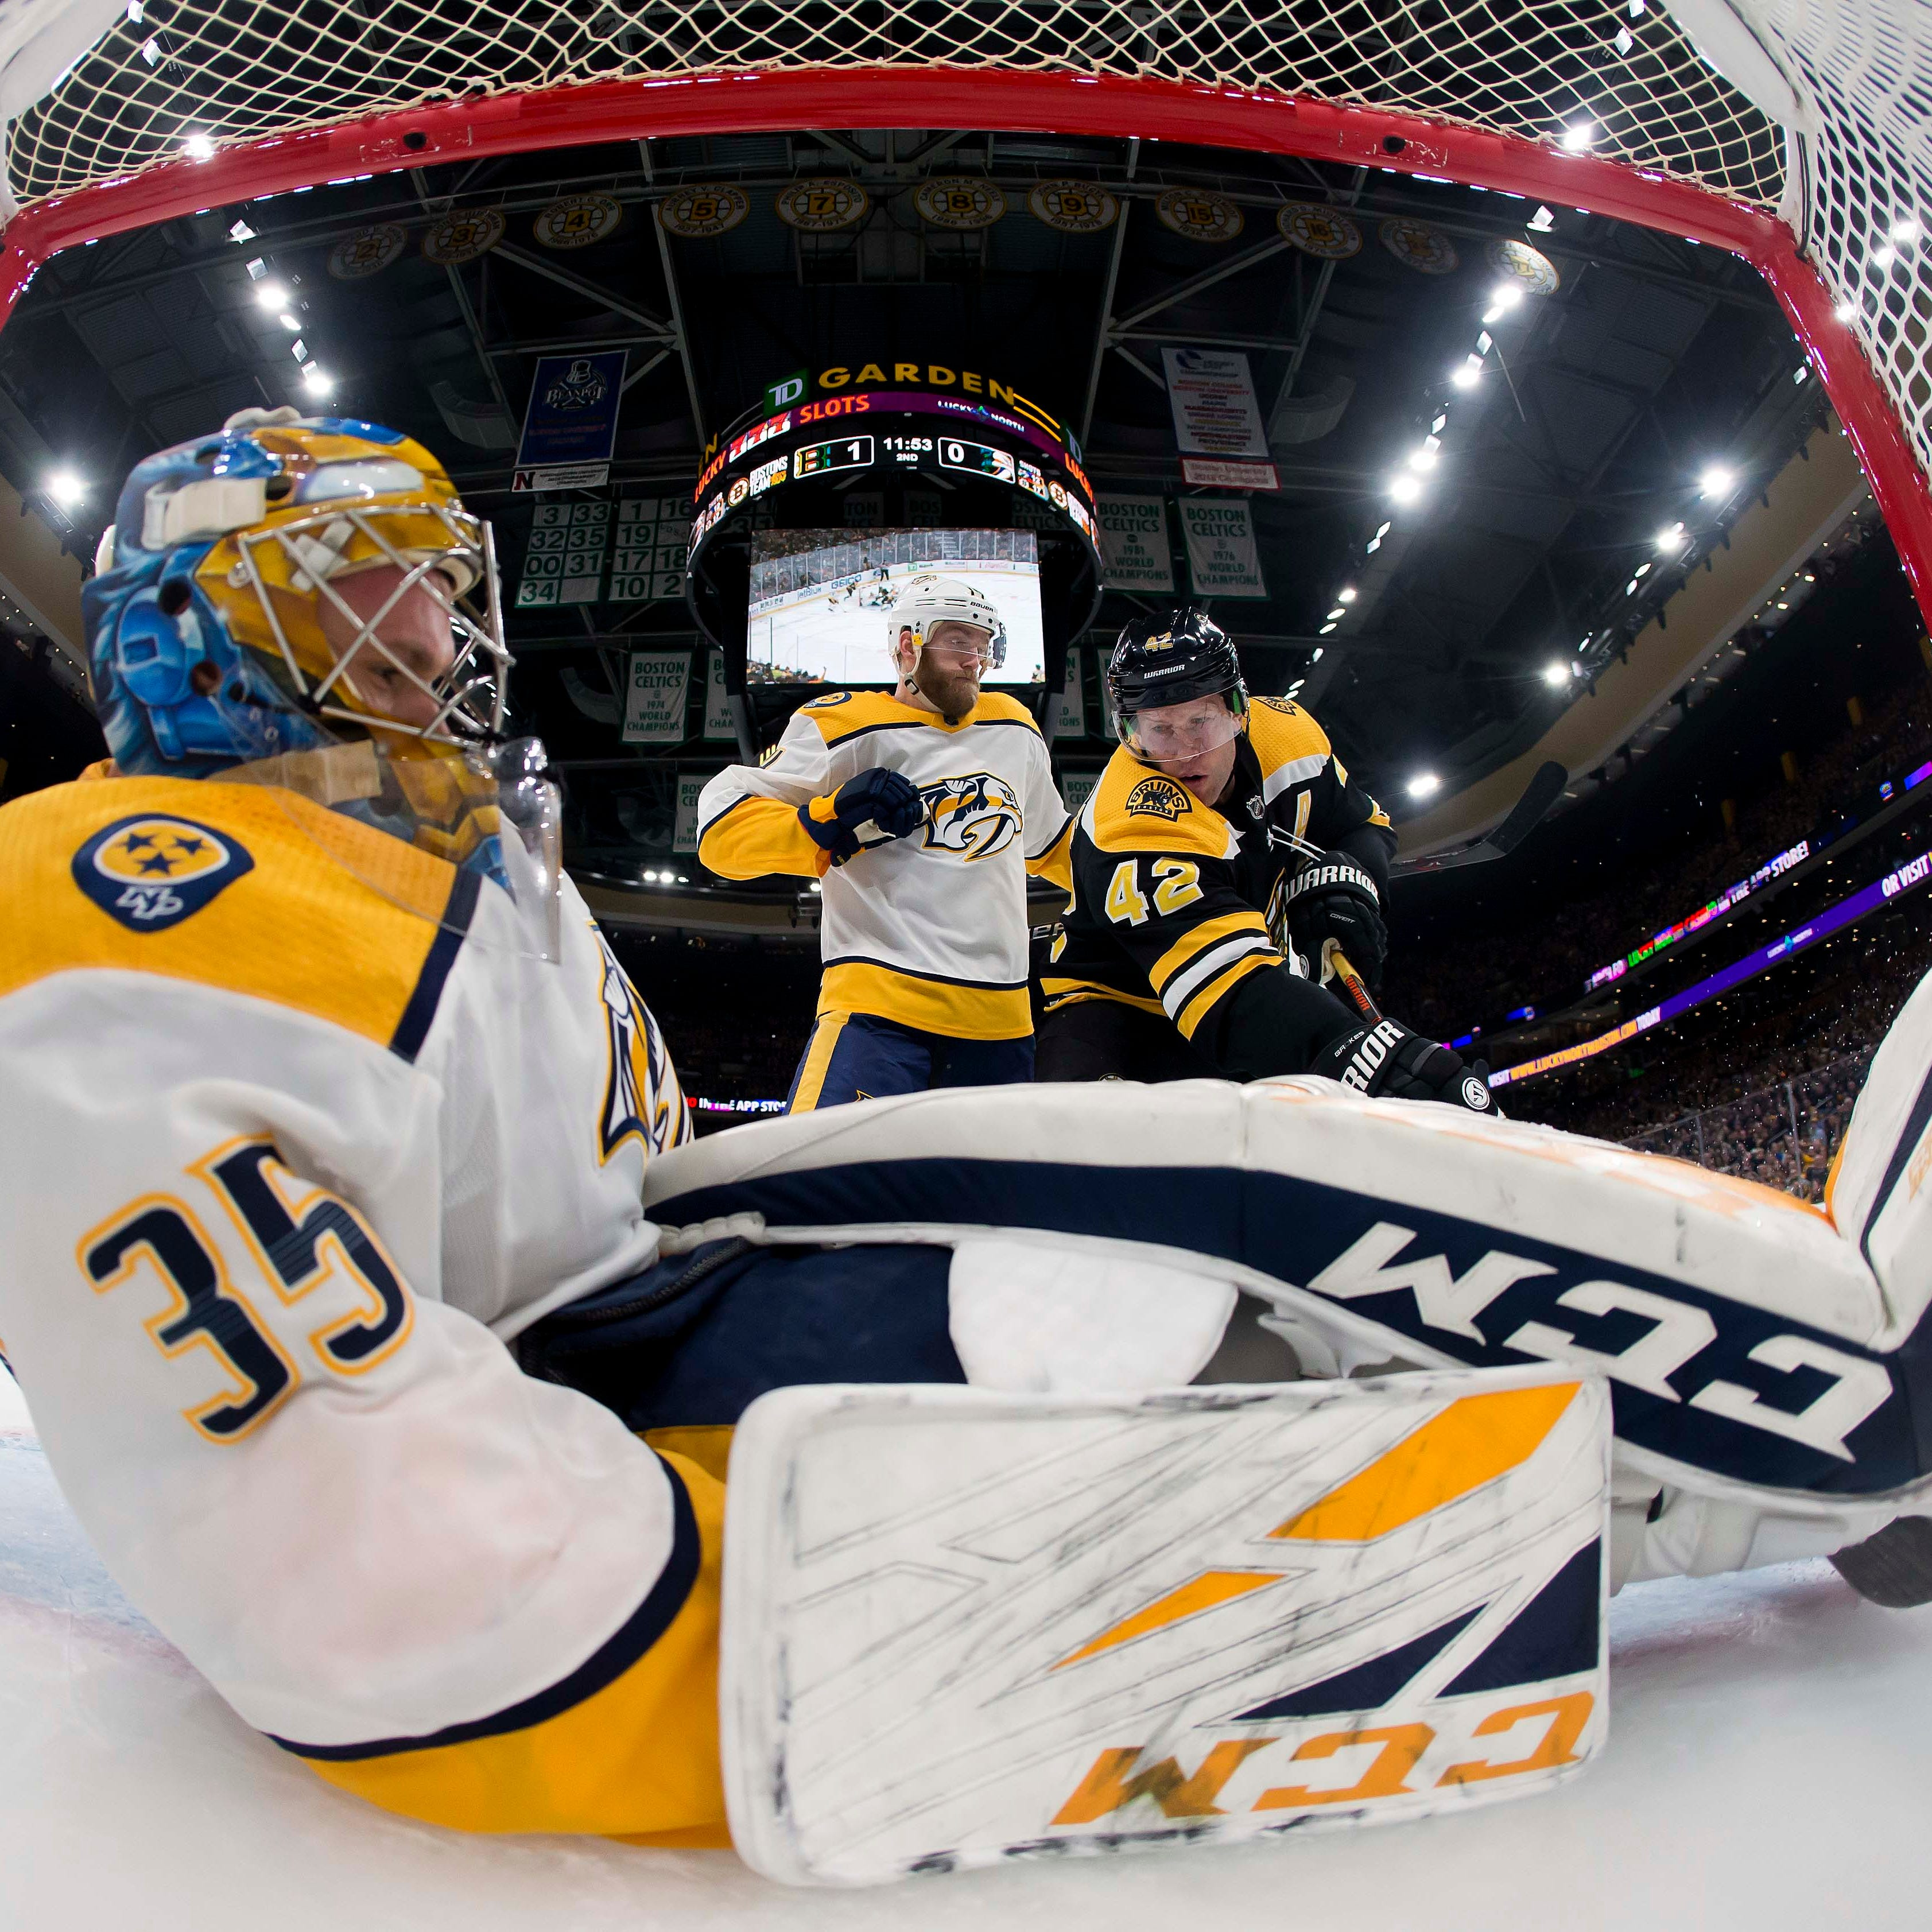 Predators' Pekka Rinne: 'I just have to be better'